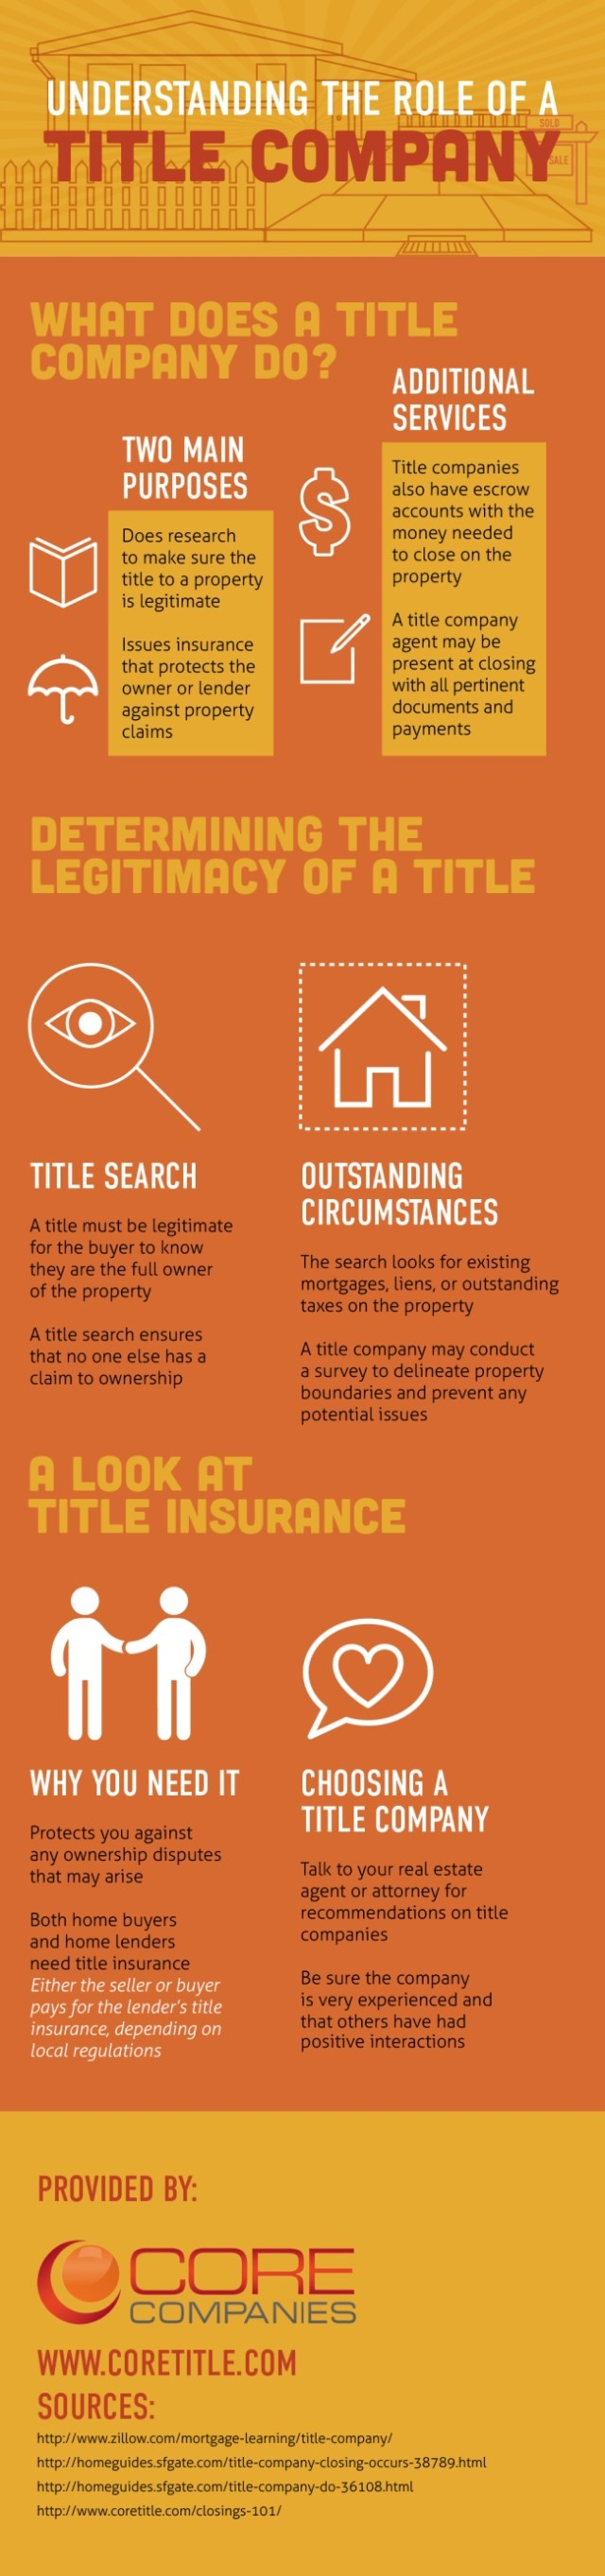 understanding-the-role-of-a-title-company_57aba7d190d29